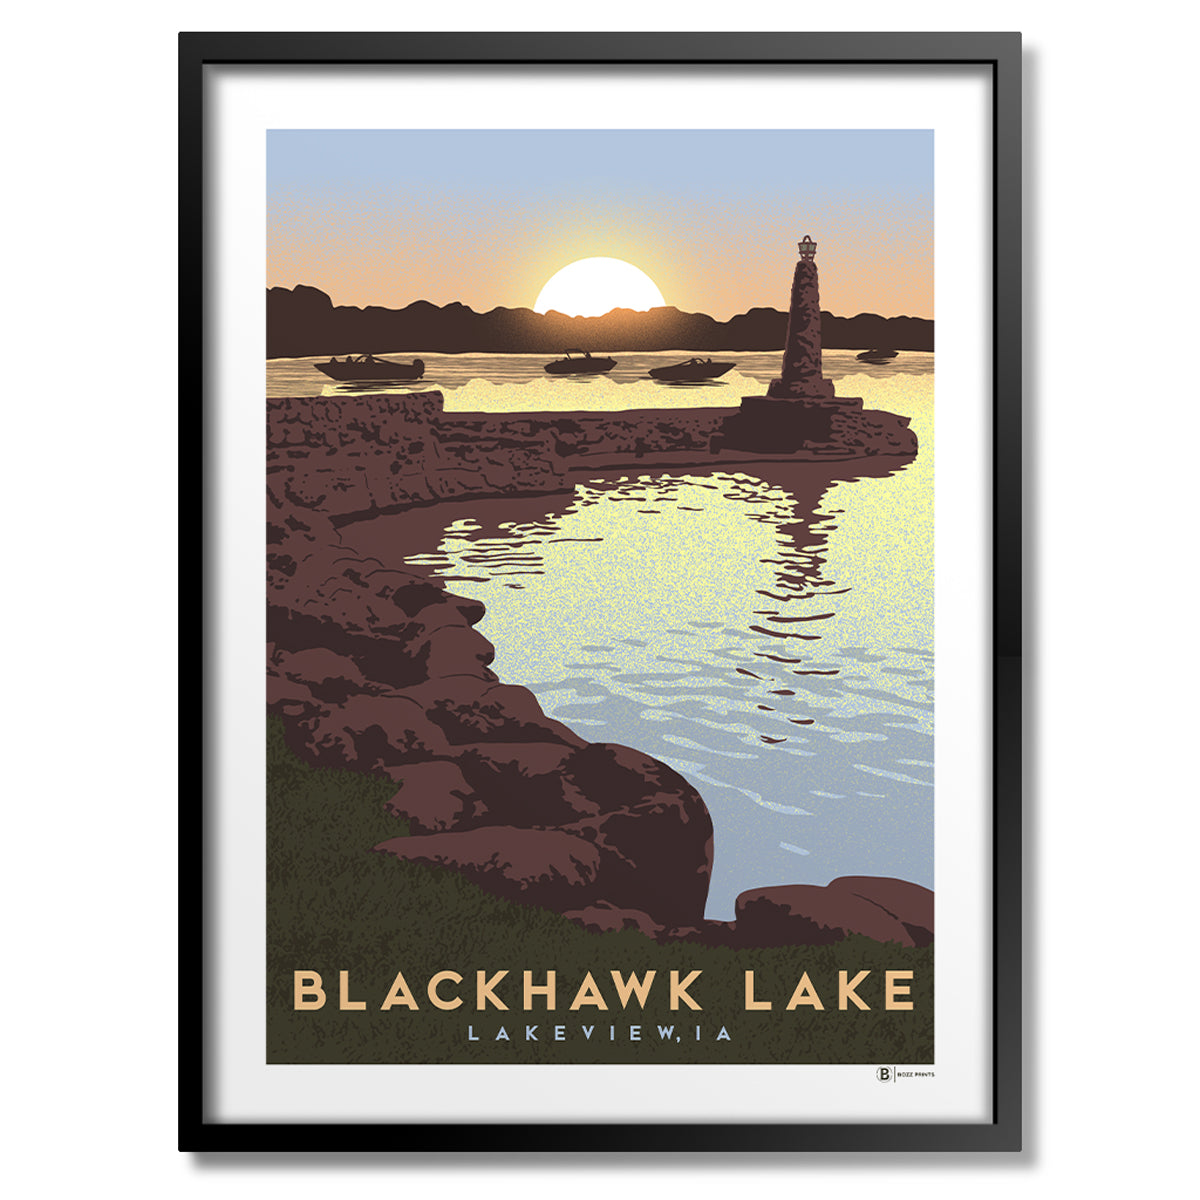 Blackhawk Lake Print